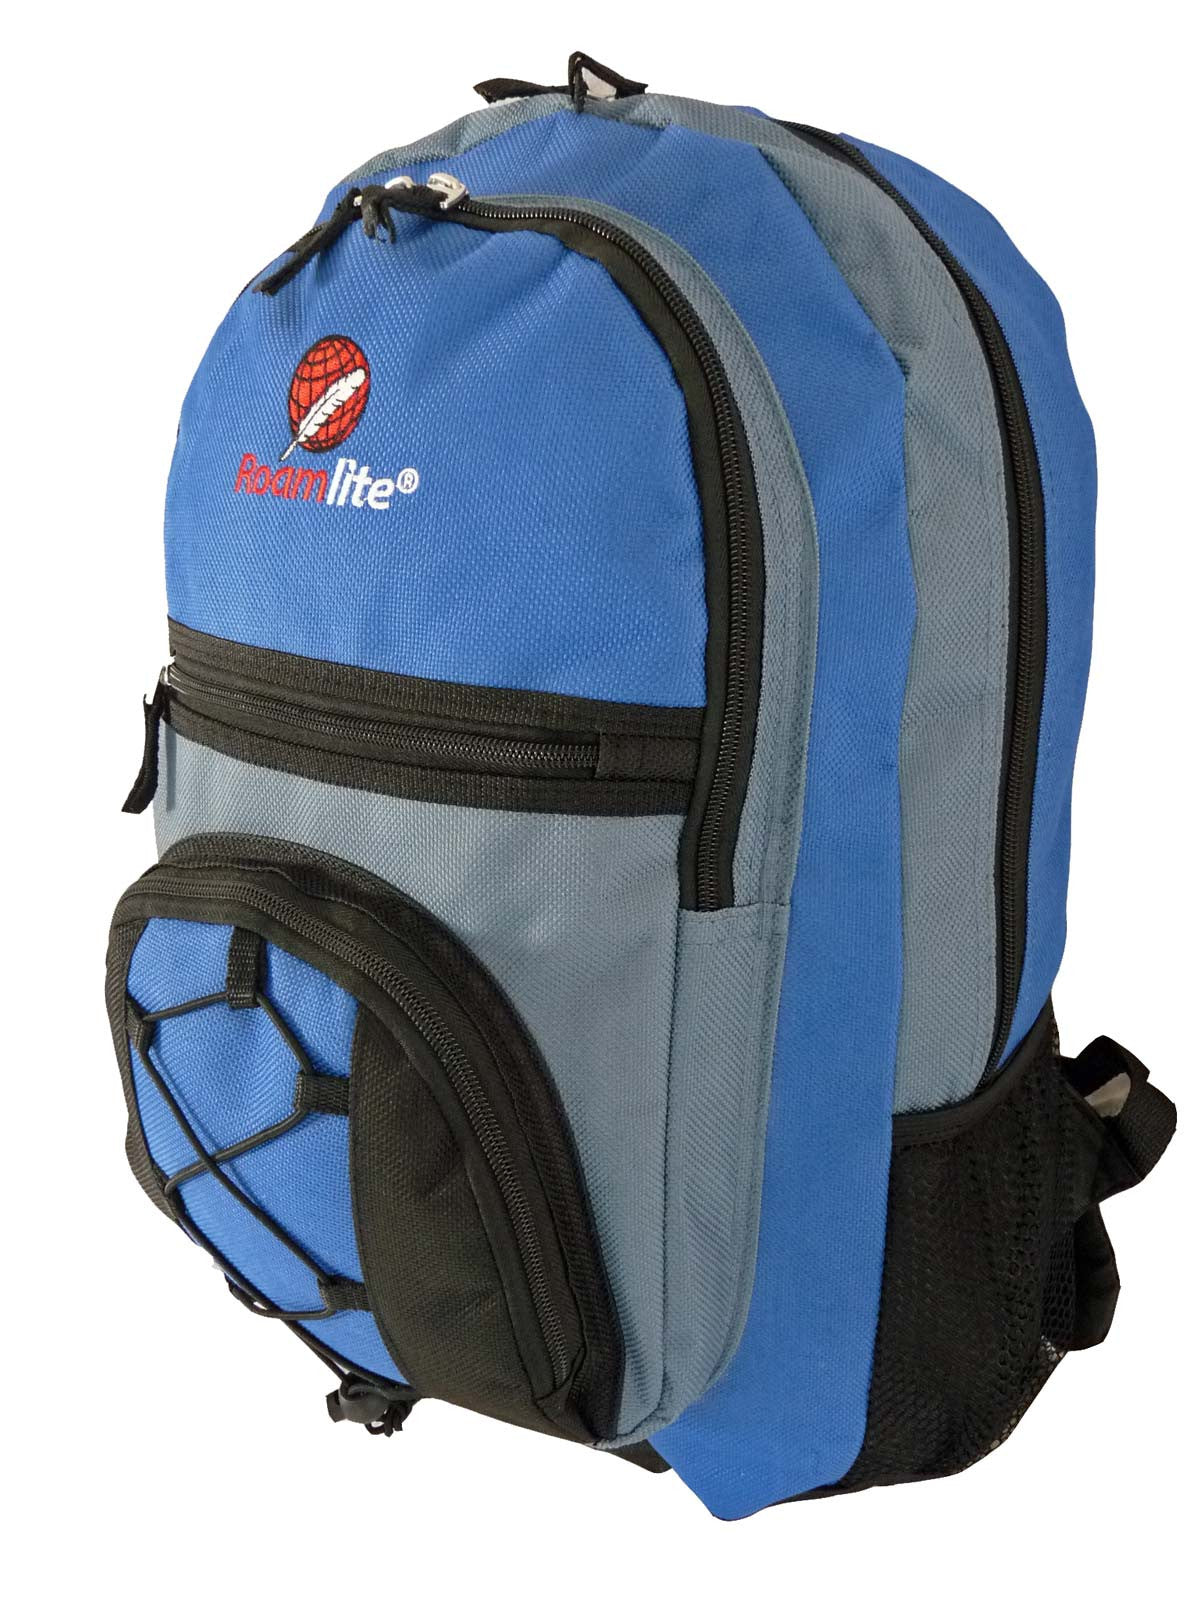 Kids School Bags RL37M Light Blue Side View